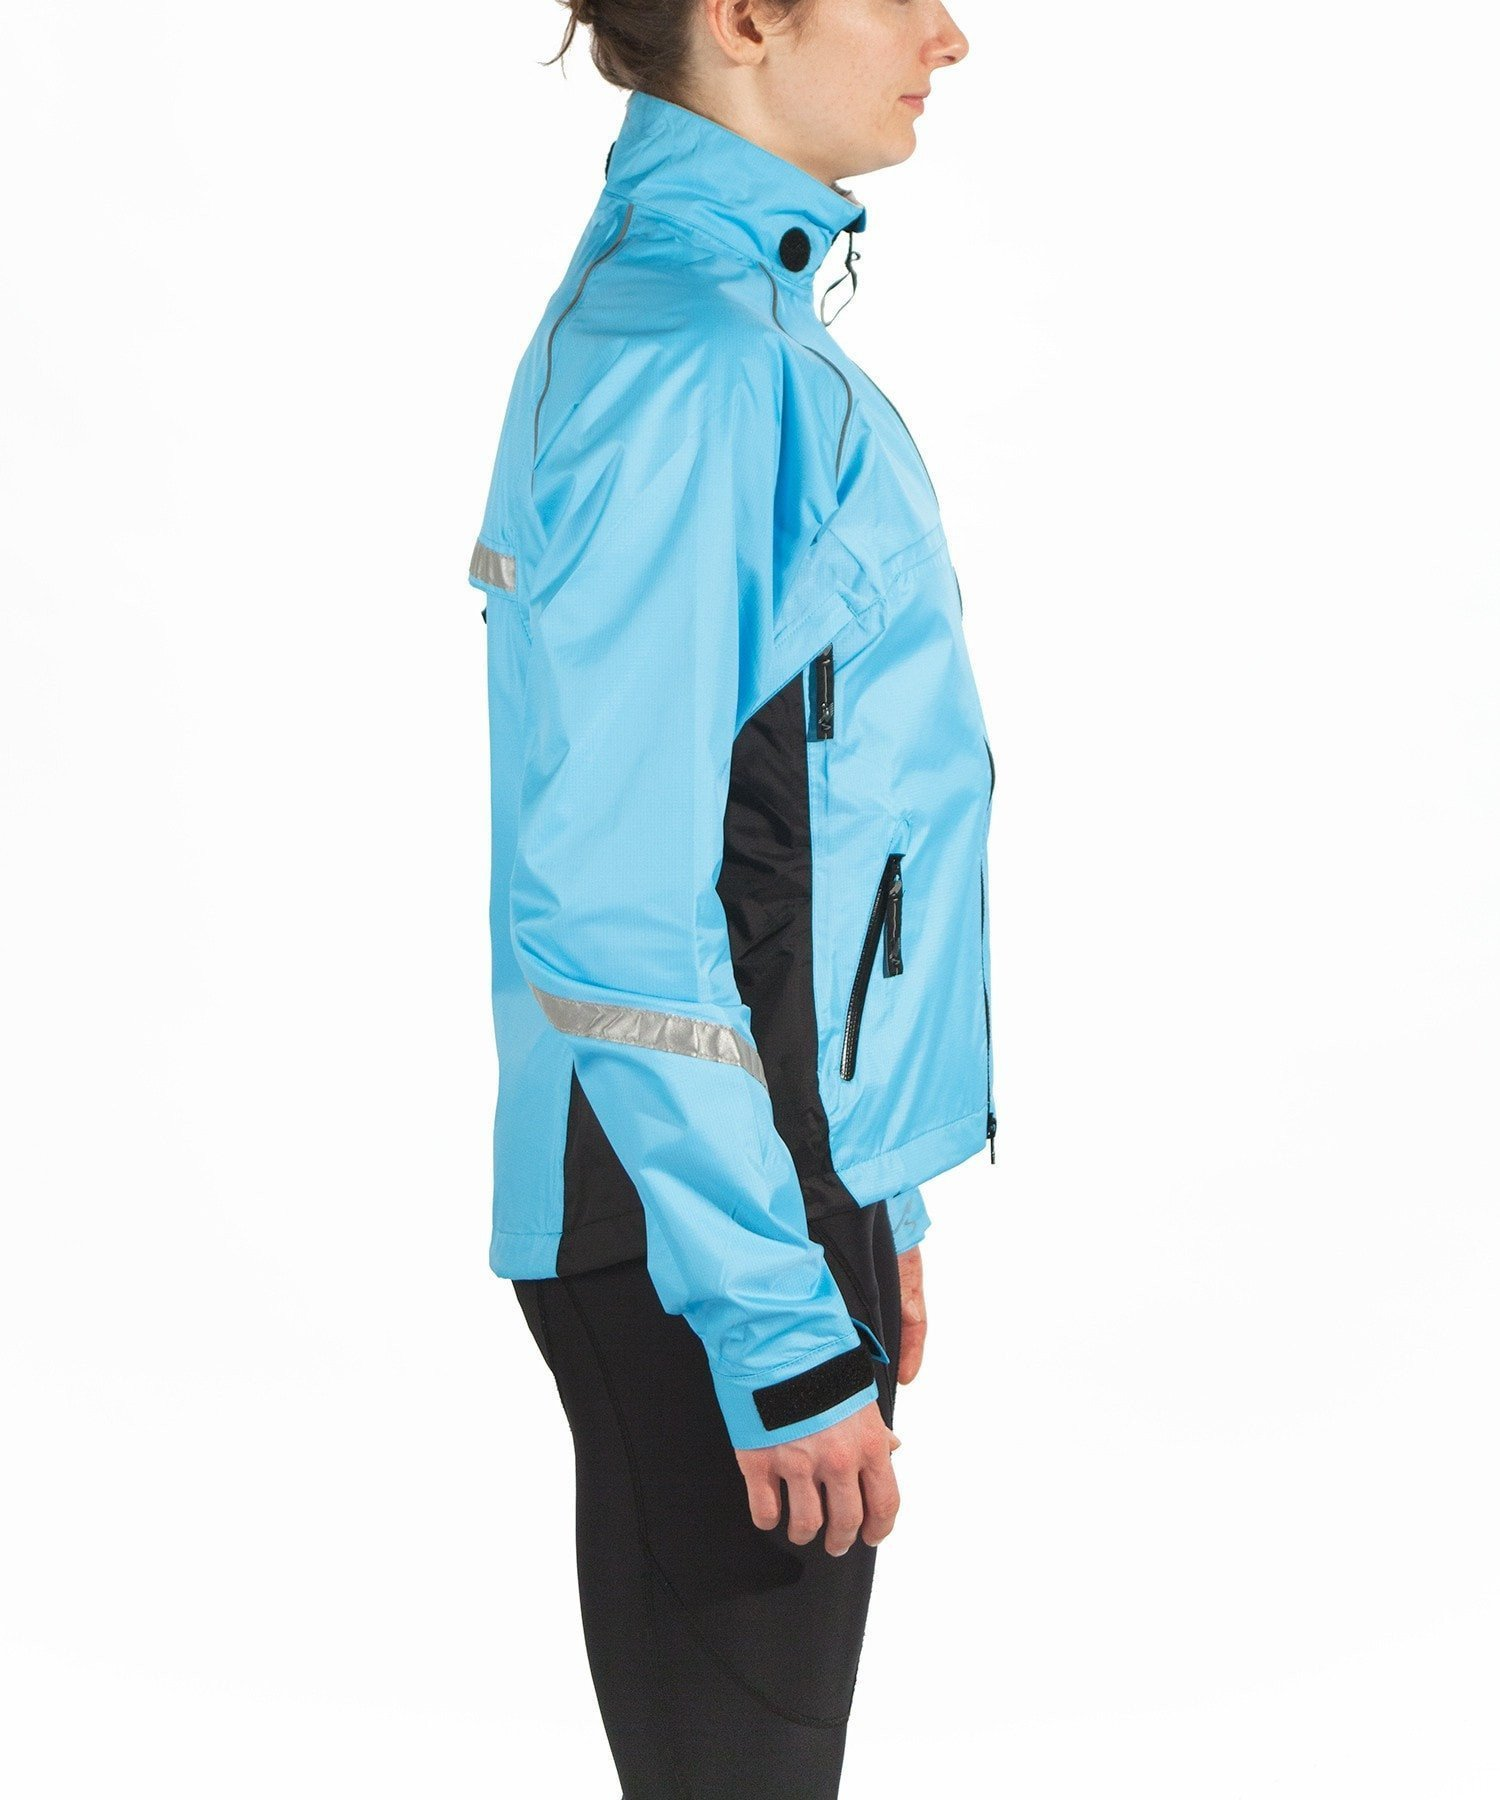 Women's Club Pro Jacket - Powder Blue by Showers Pass